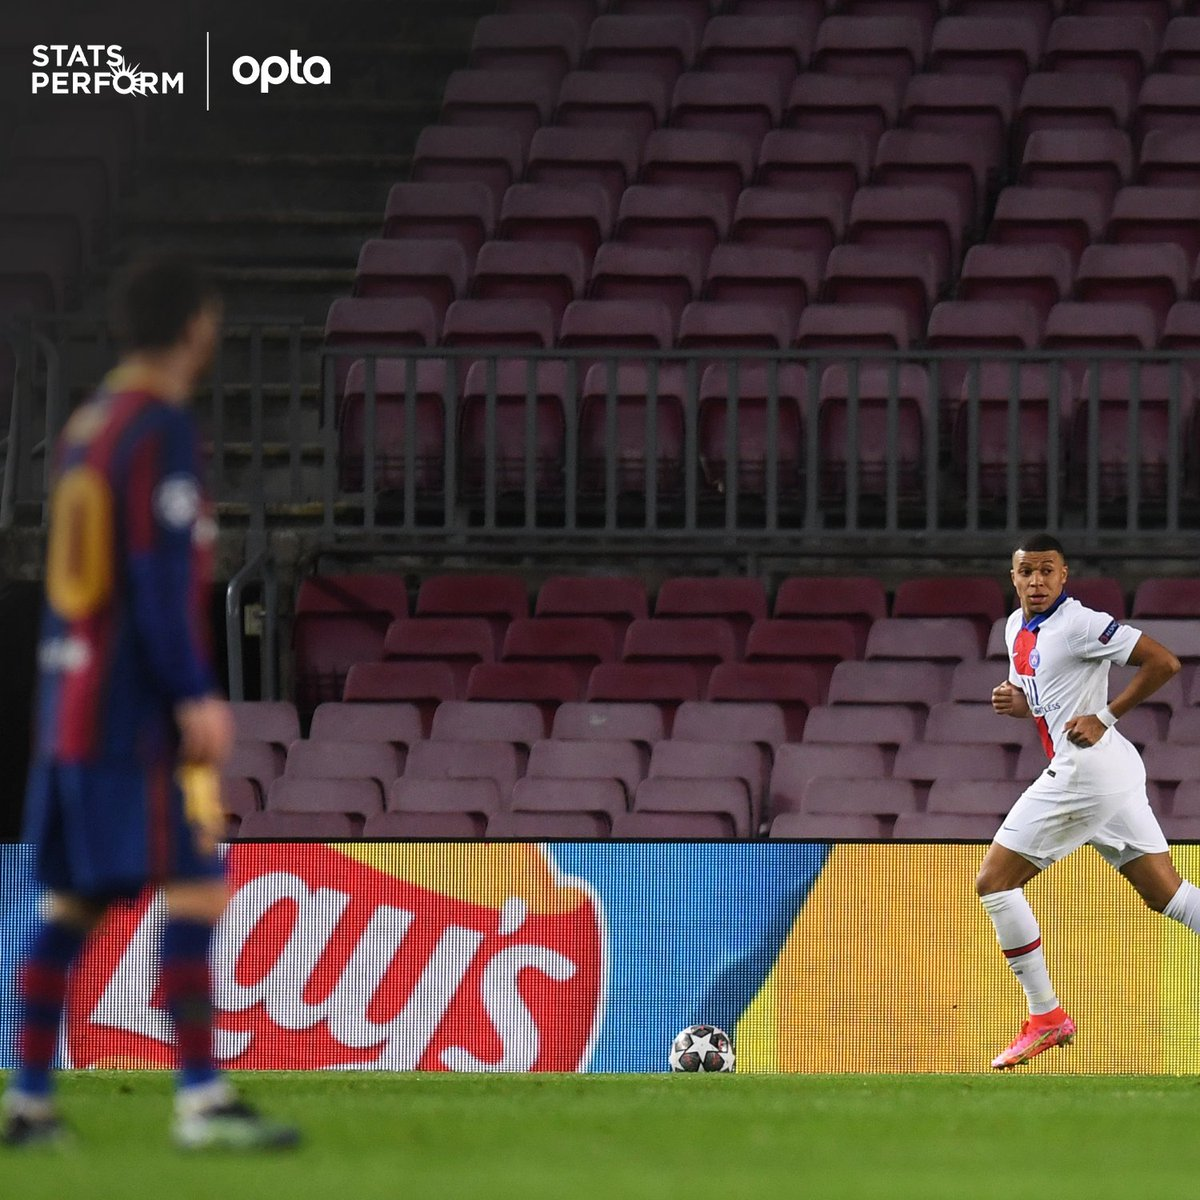 Optajoe On Twitter 3 Kylian Mbappe Is Only The Third Player To Score A Uefa Champions League Hat Trick Against Barcelona After Faustino Asprilla For Newcastle And Andriy Shevchenko For Dynamo Kyiv